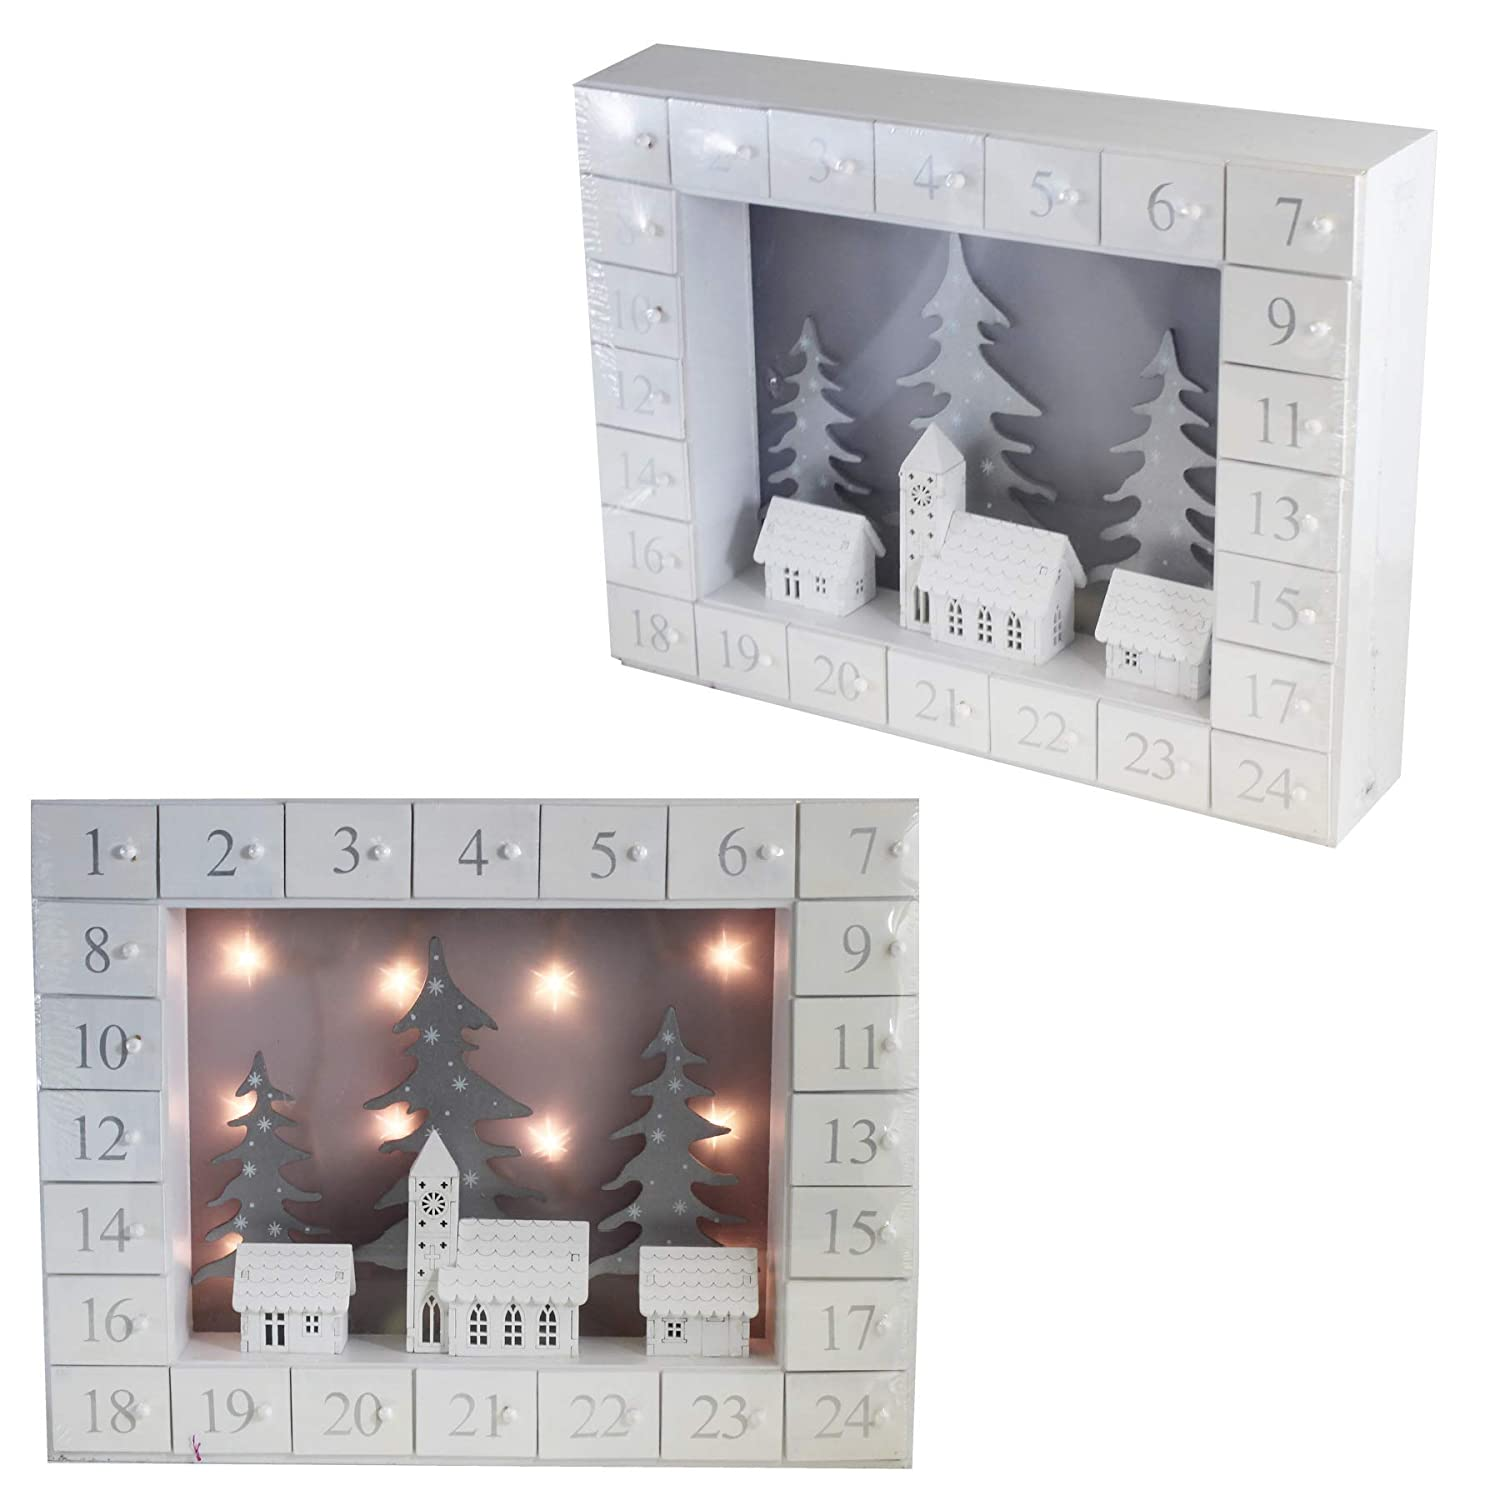 The Uk Candle Company Christmas Wooden Advent Calendar Light Up Houses Design - Add your own Treats